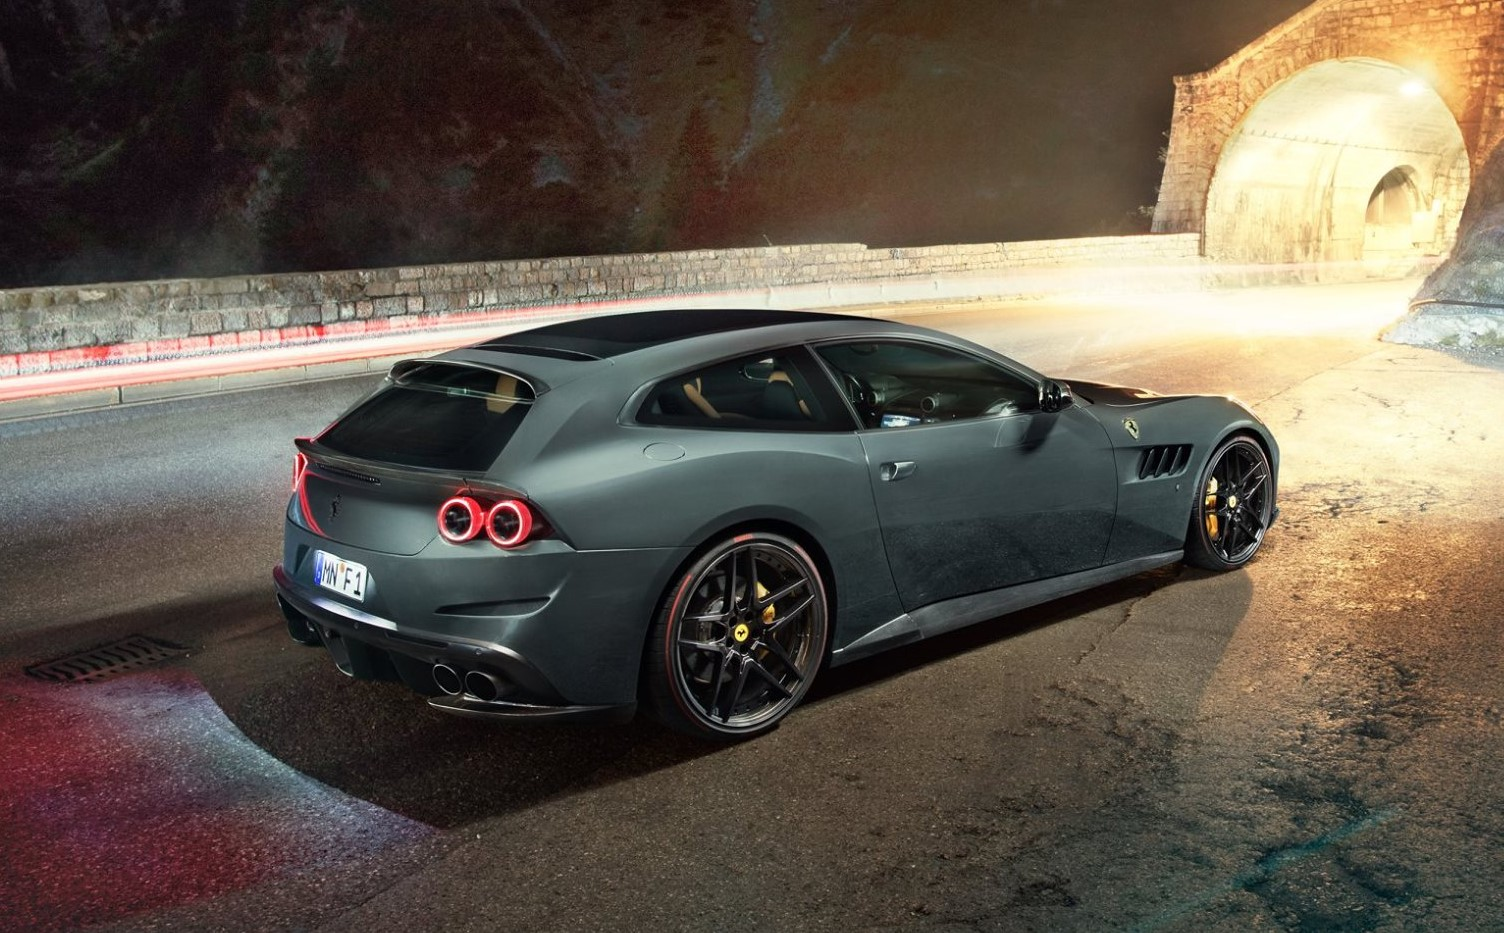 Novitec Ferrari Gtc4 Lusso Tuning Kit Revealed